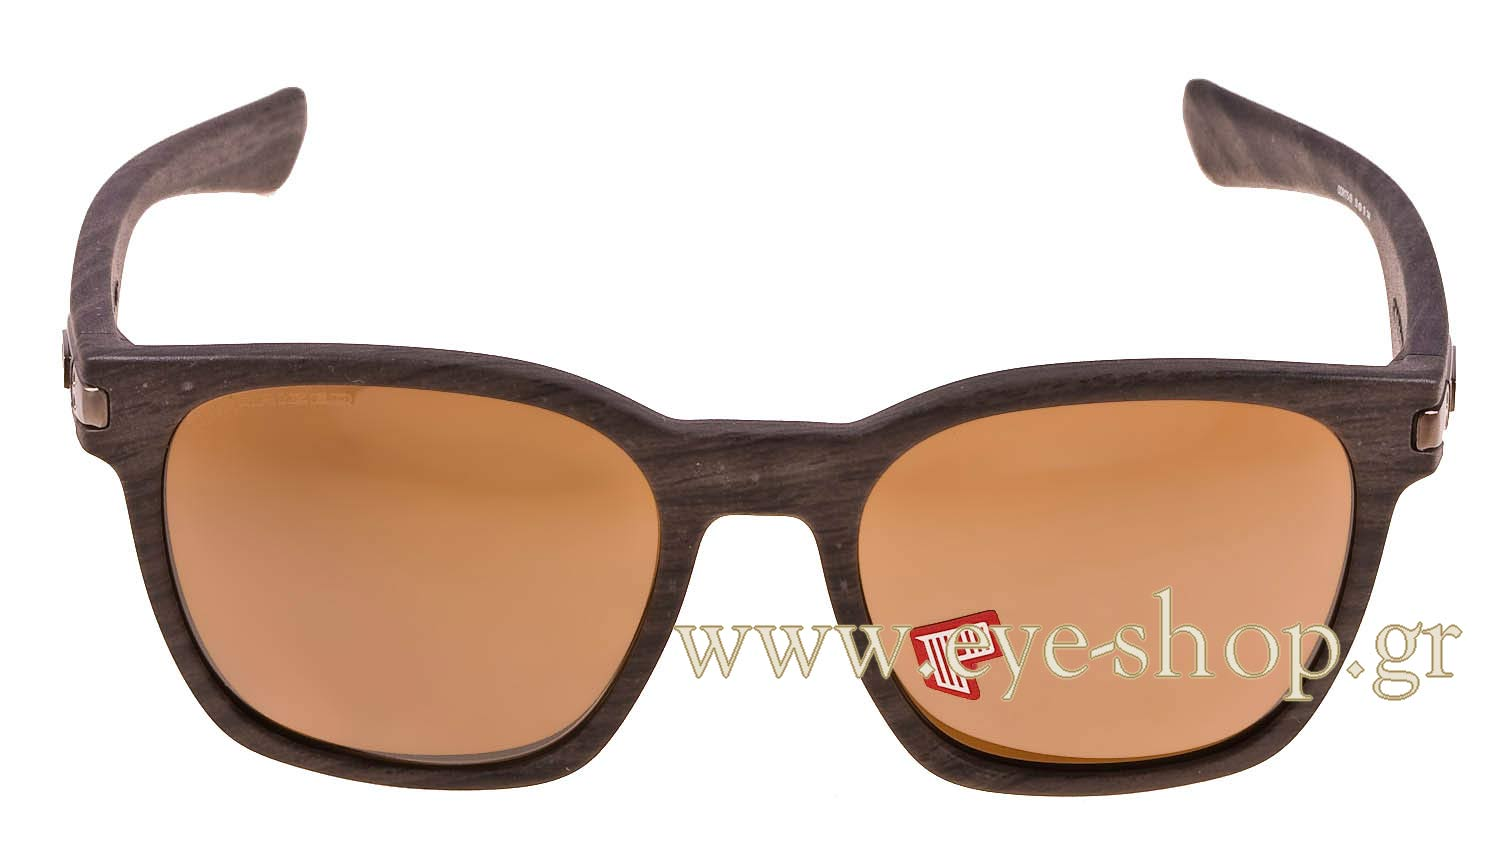 449321d467 Oakley Garage Rock Wood Grain « Heritage Malta